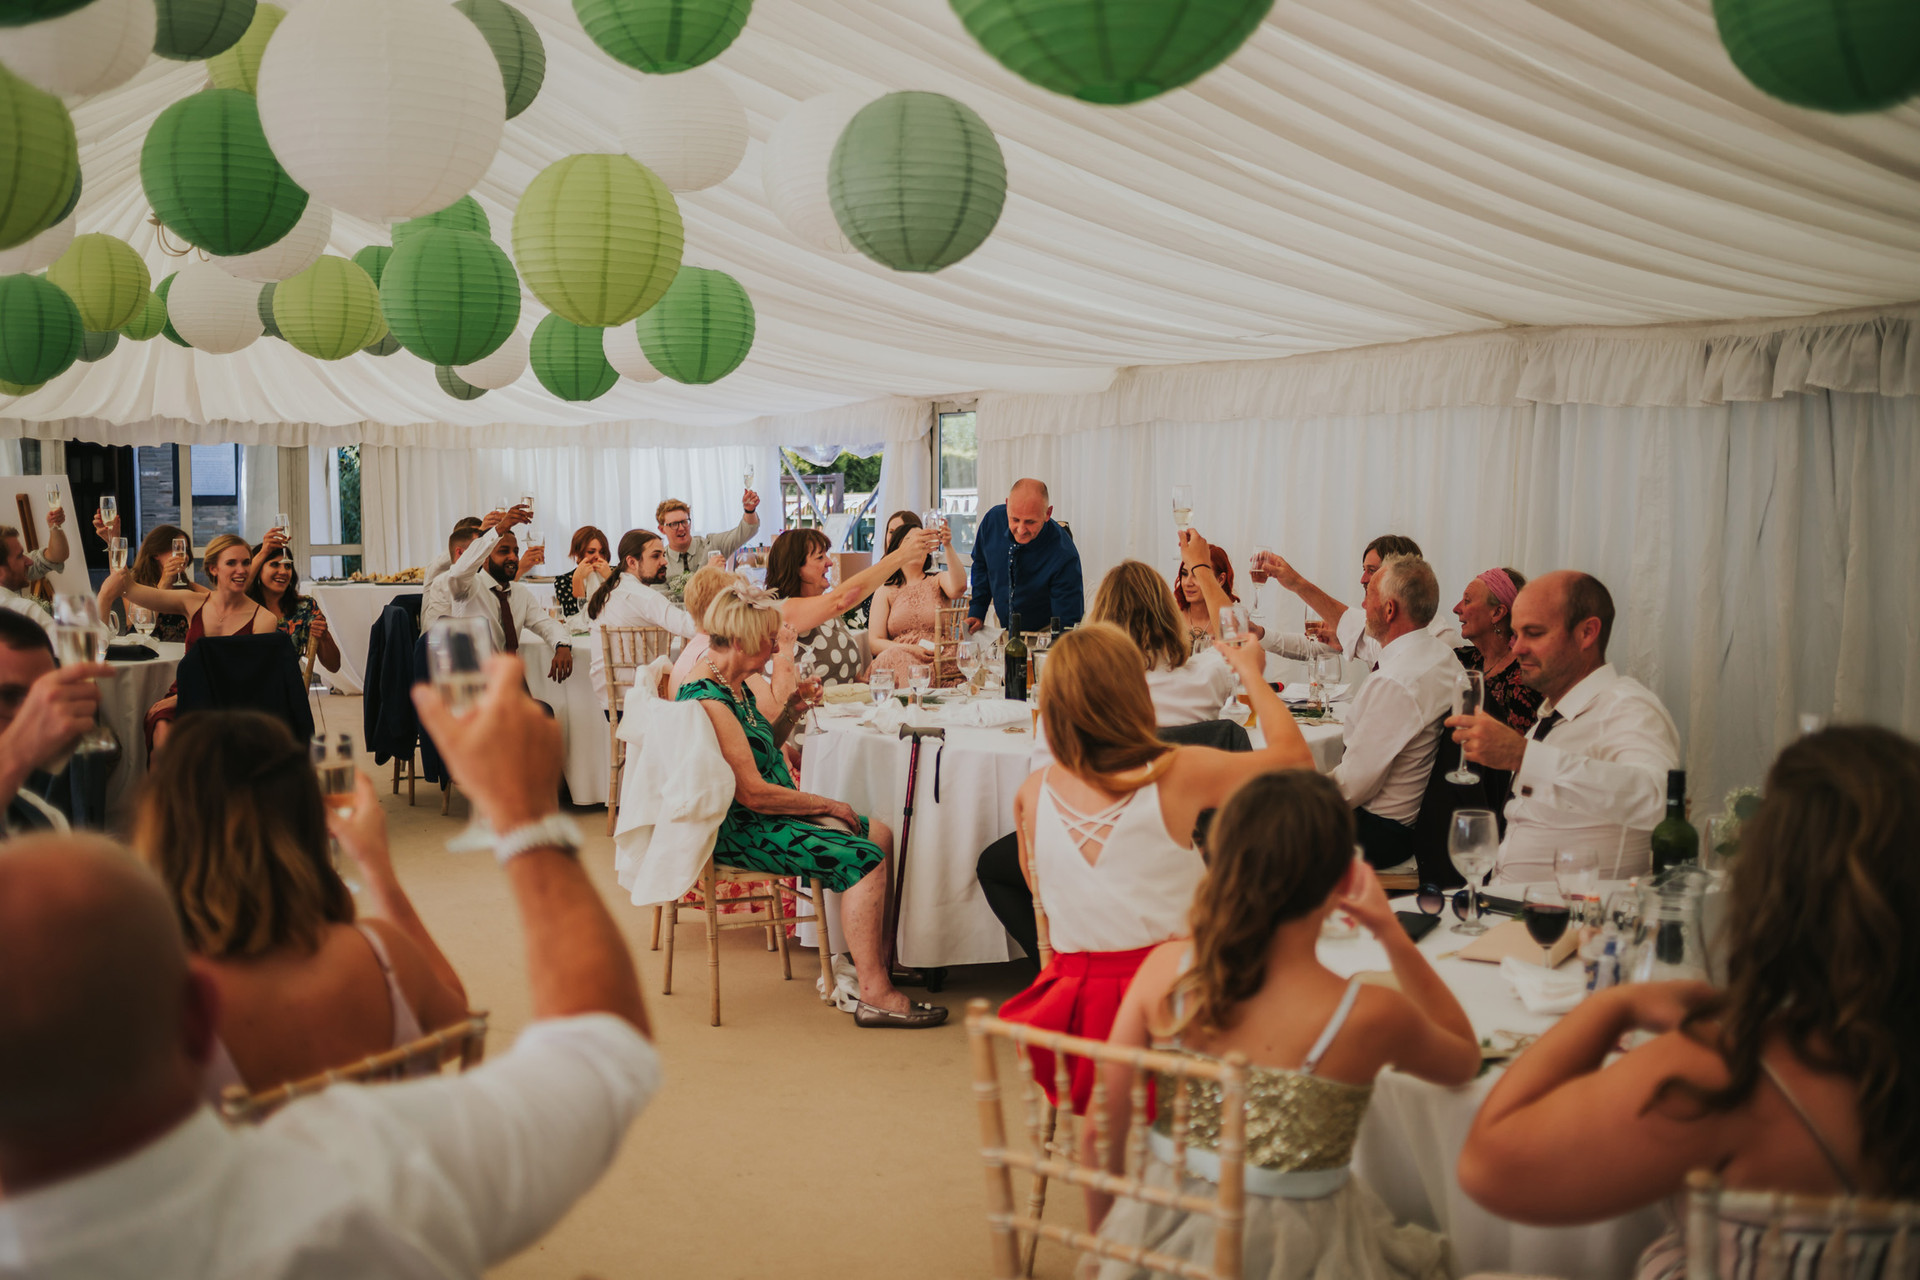 all the guests in the wedding marquee toasting the bride and groom